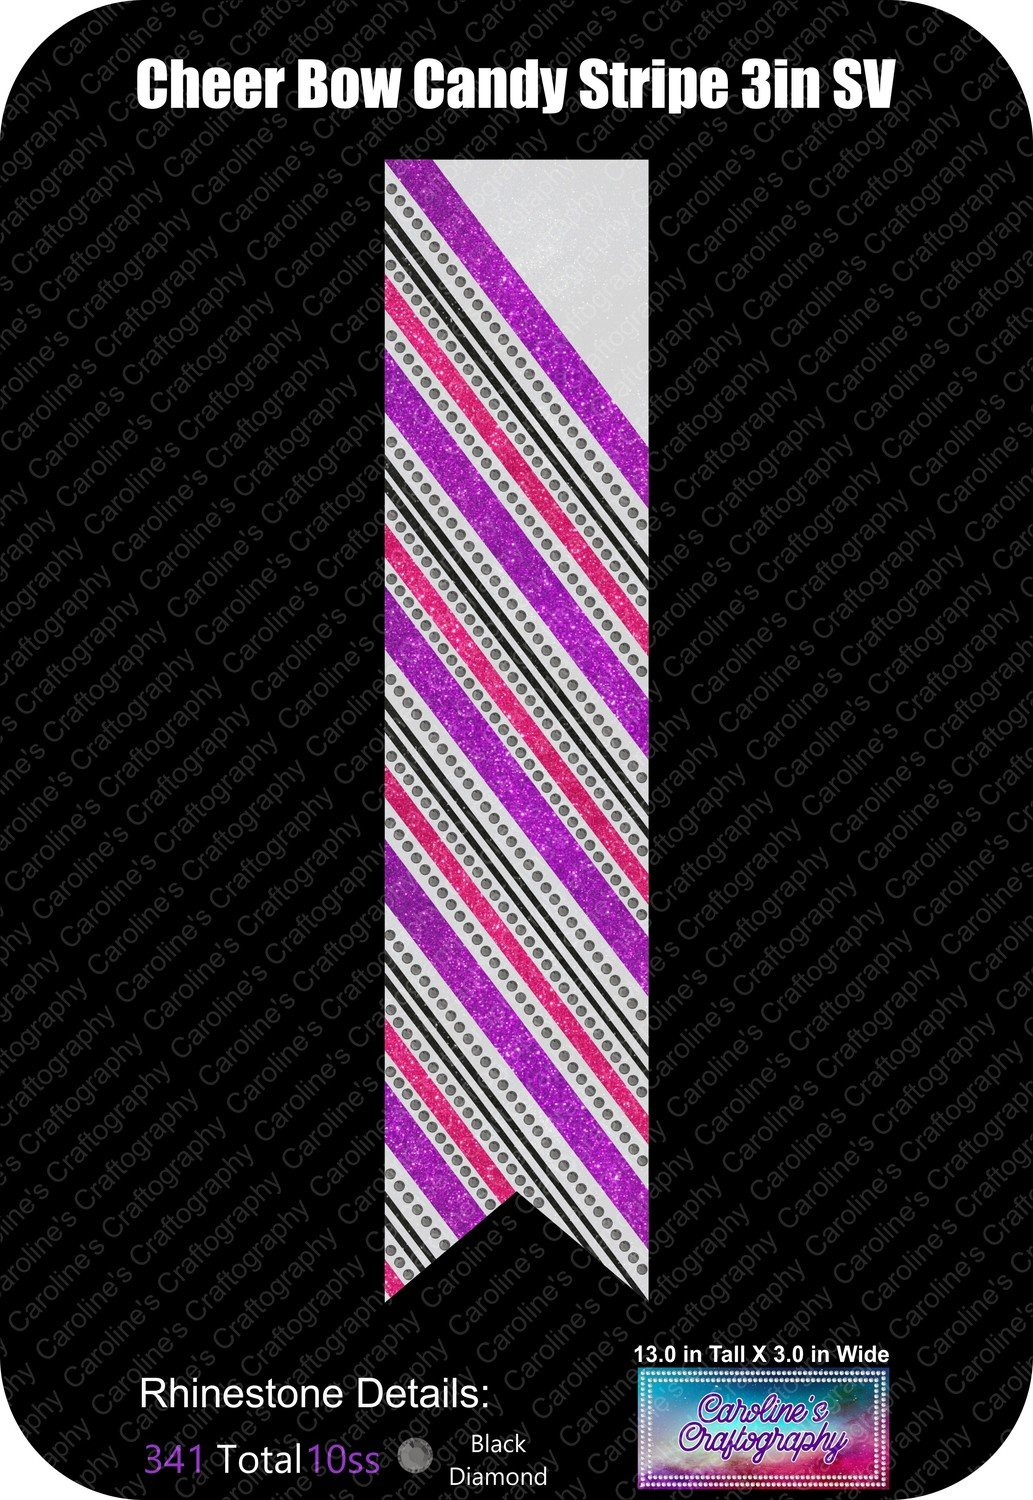 Cheer Bow Candy Stripe 3in Stone Vinyl